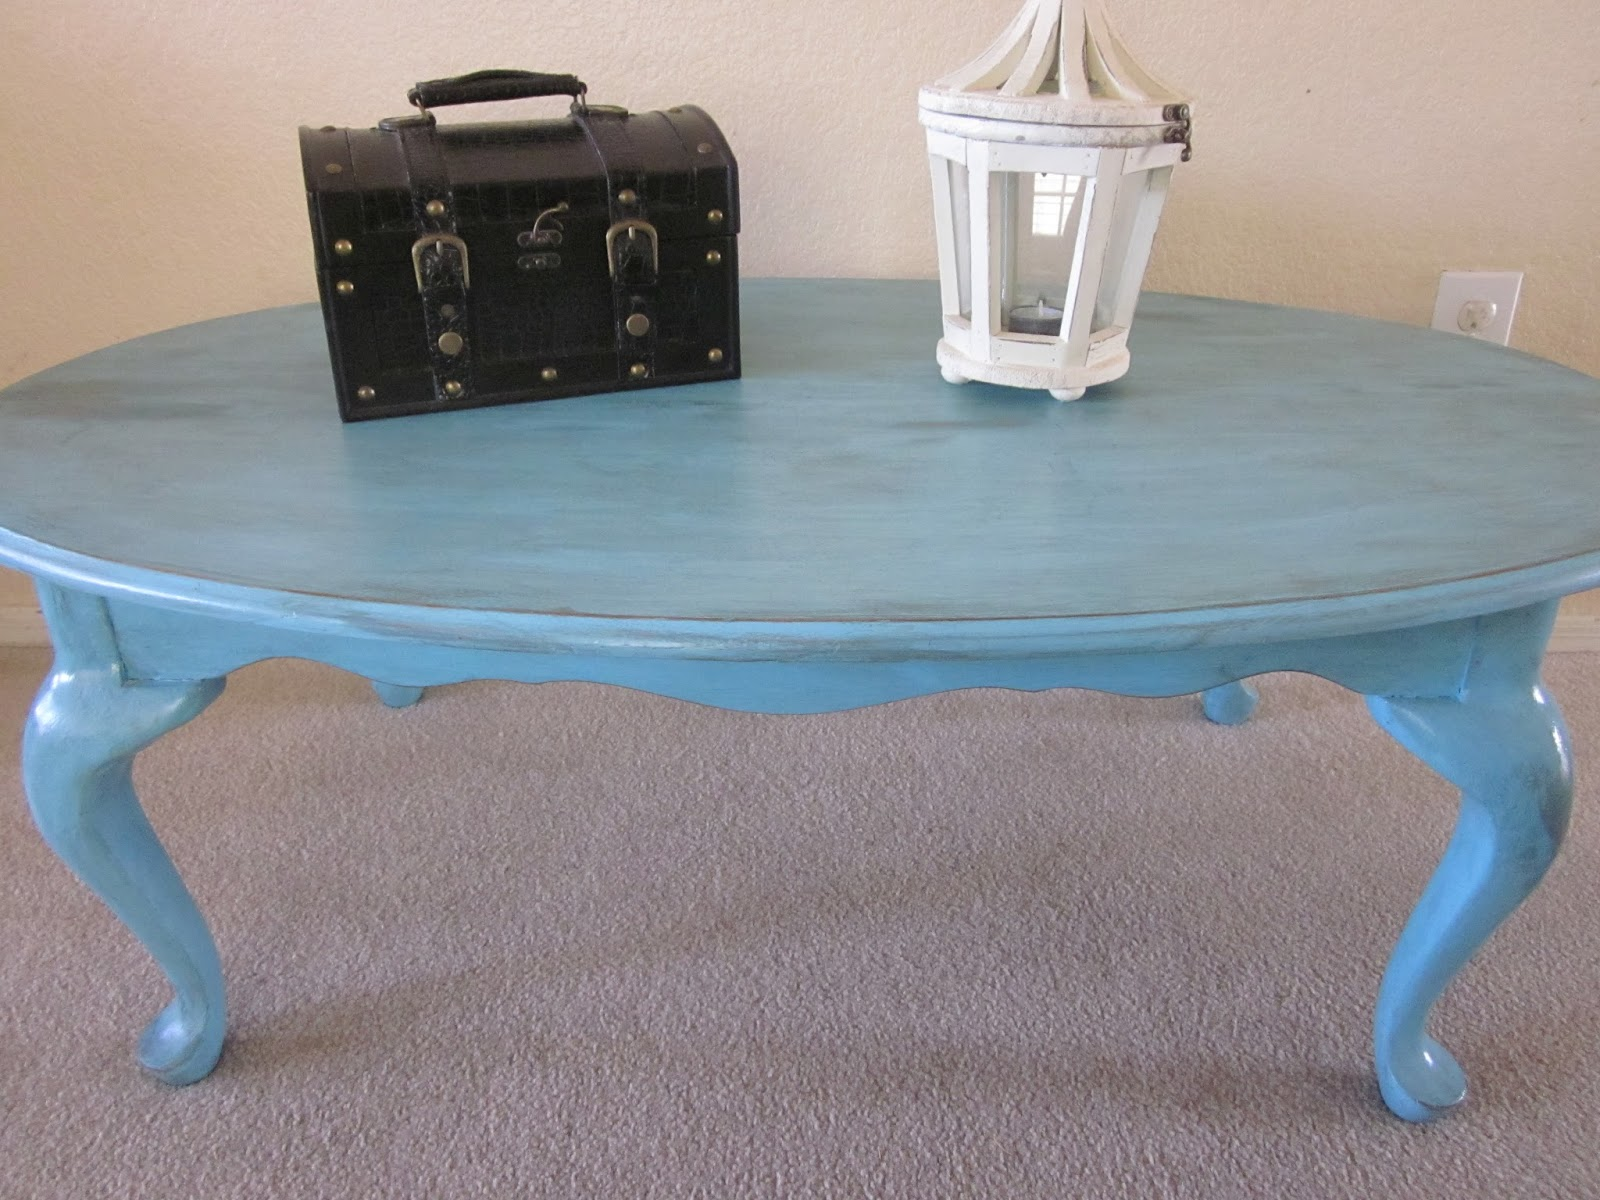 My Rustic Relics Blue oval coffee table